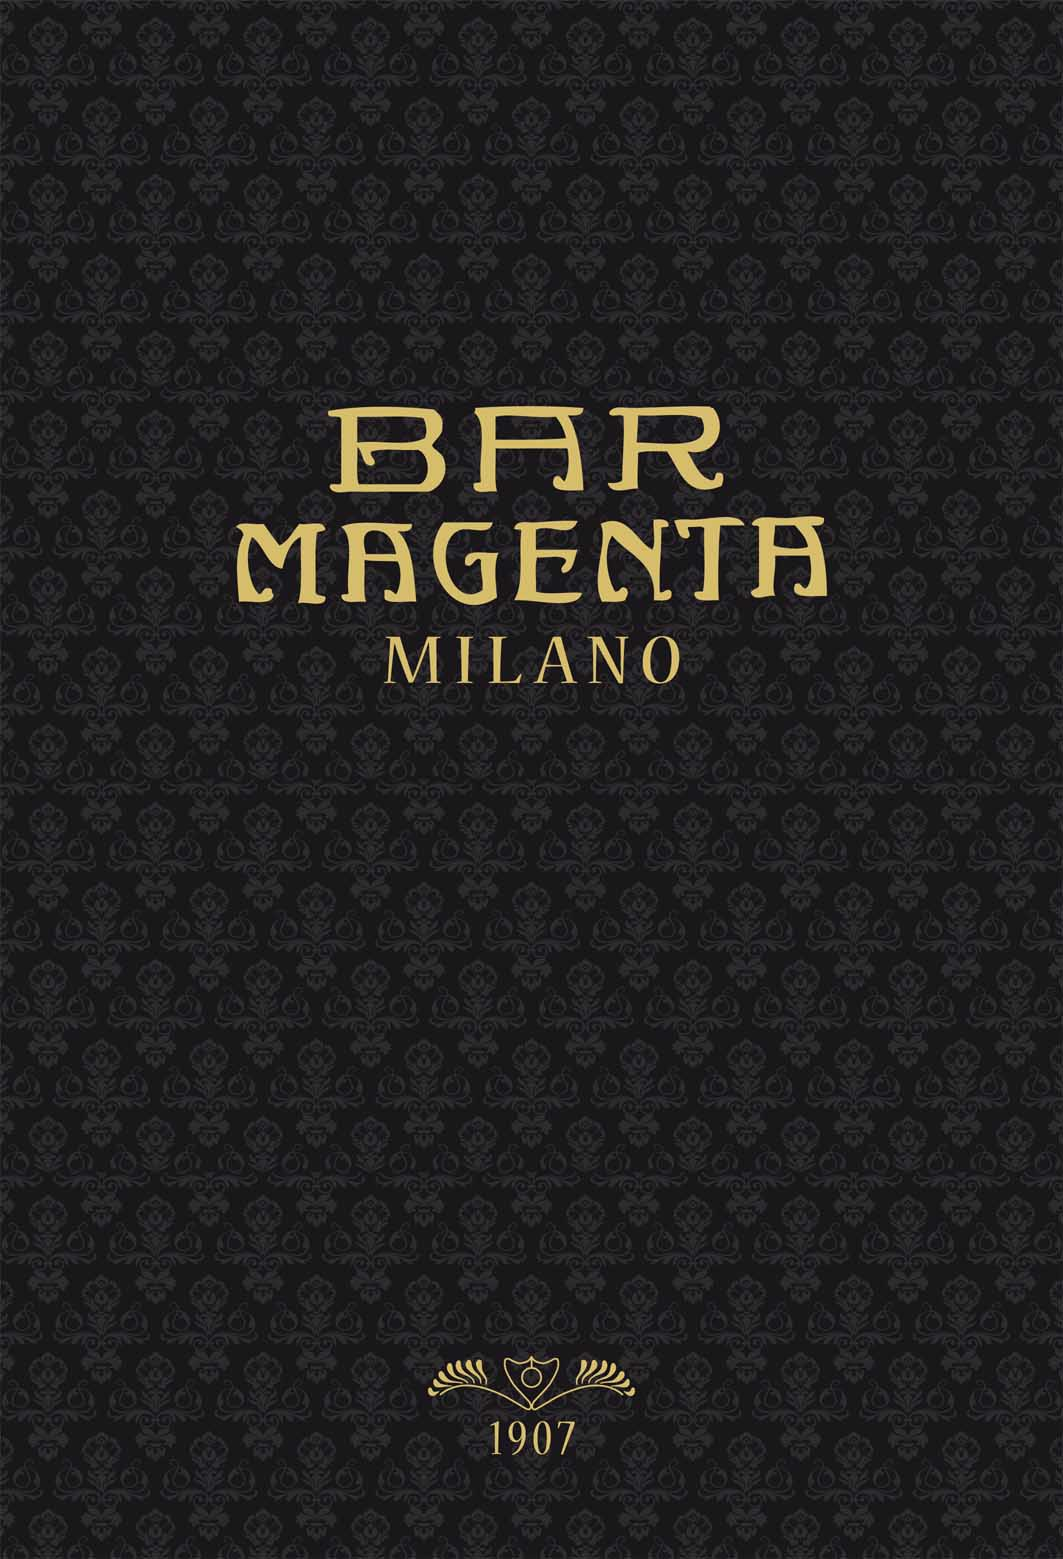 www.barmagenta.it